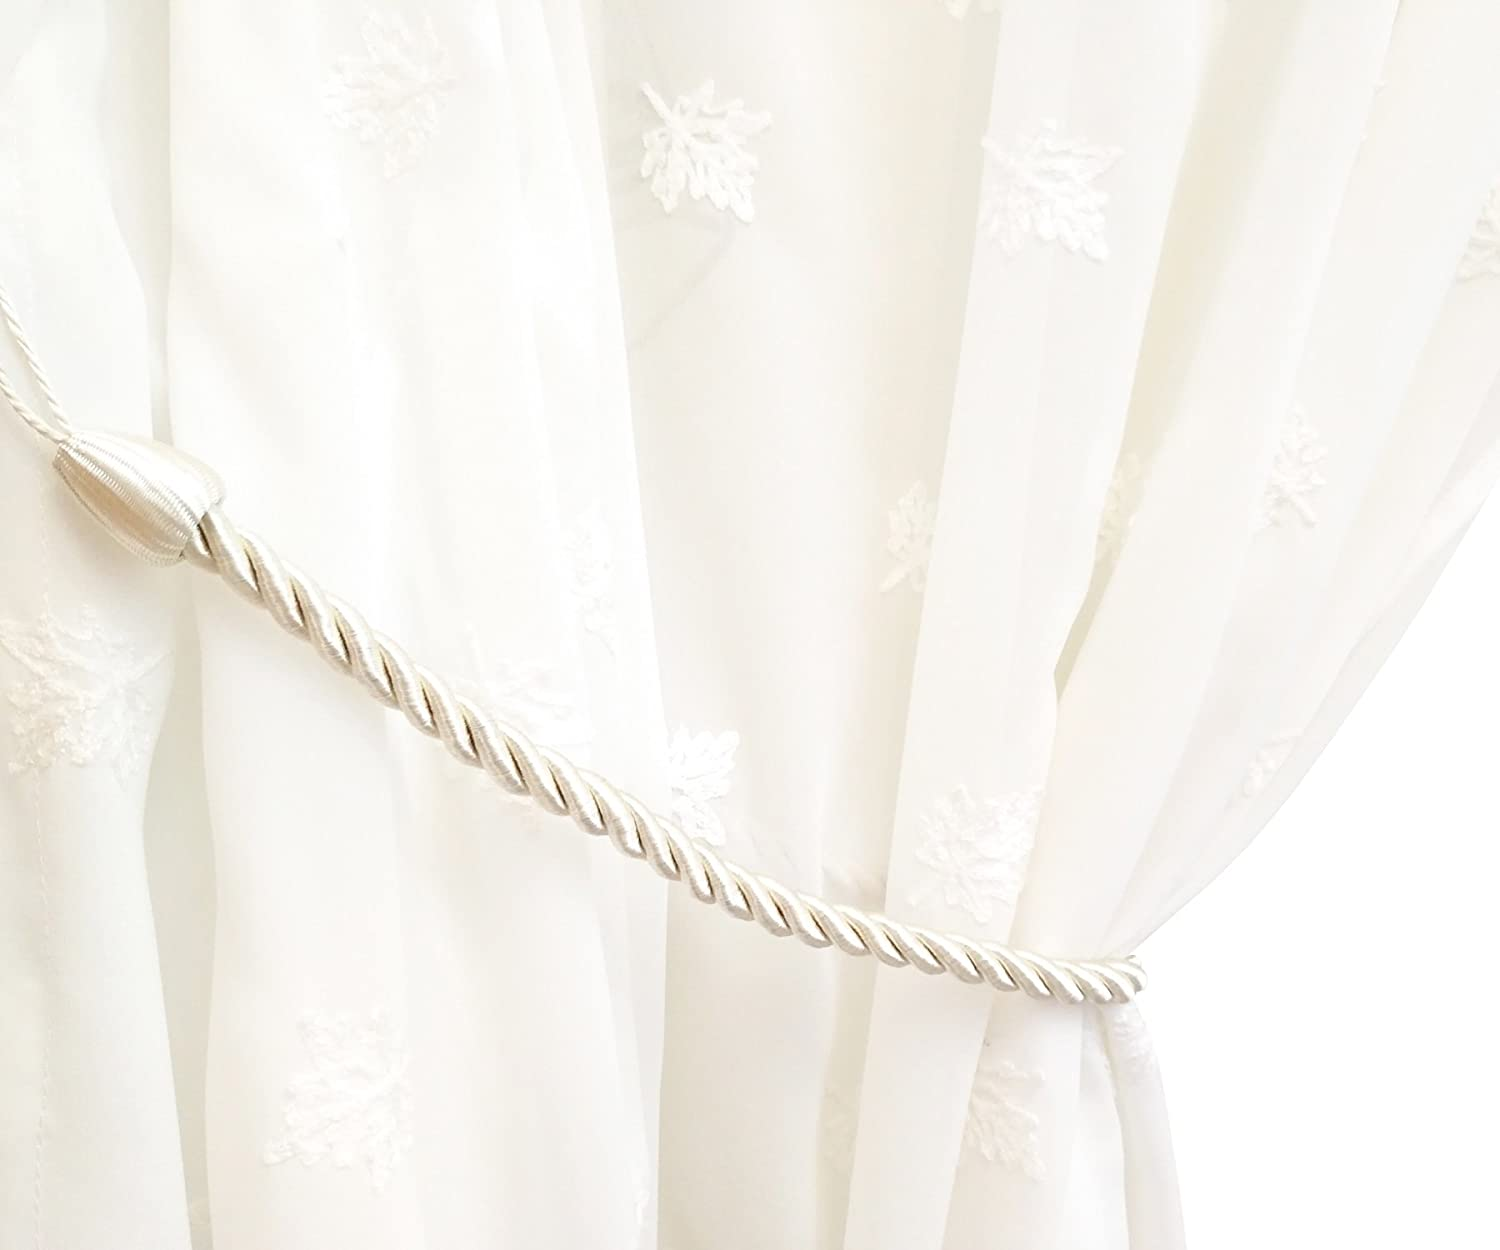 Chictie 2 Pieces Beige White Curtain Rope Cord Country Style Satin Hand Knitting Cotton Tie Backs Drapery Holdbacks Indoor Outdoor Home Window Decor